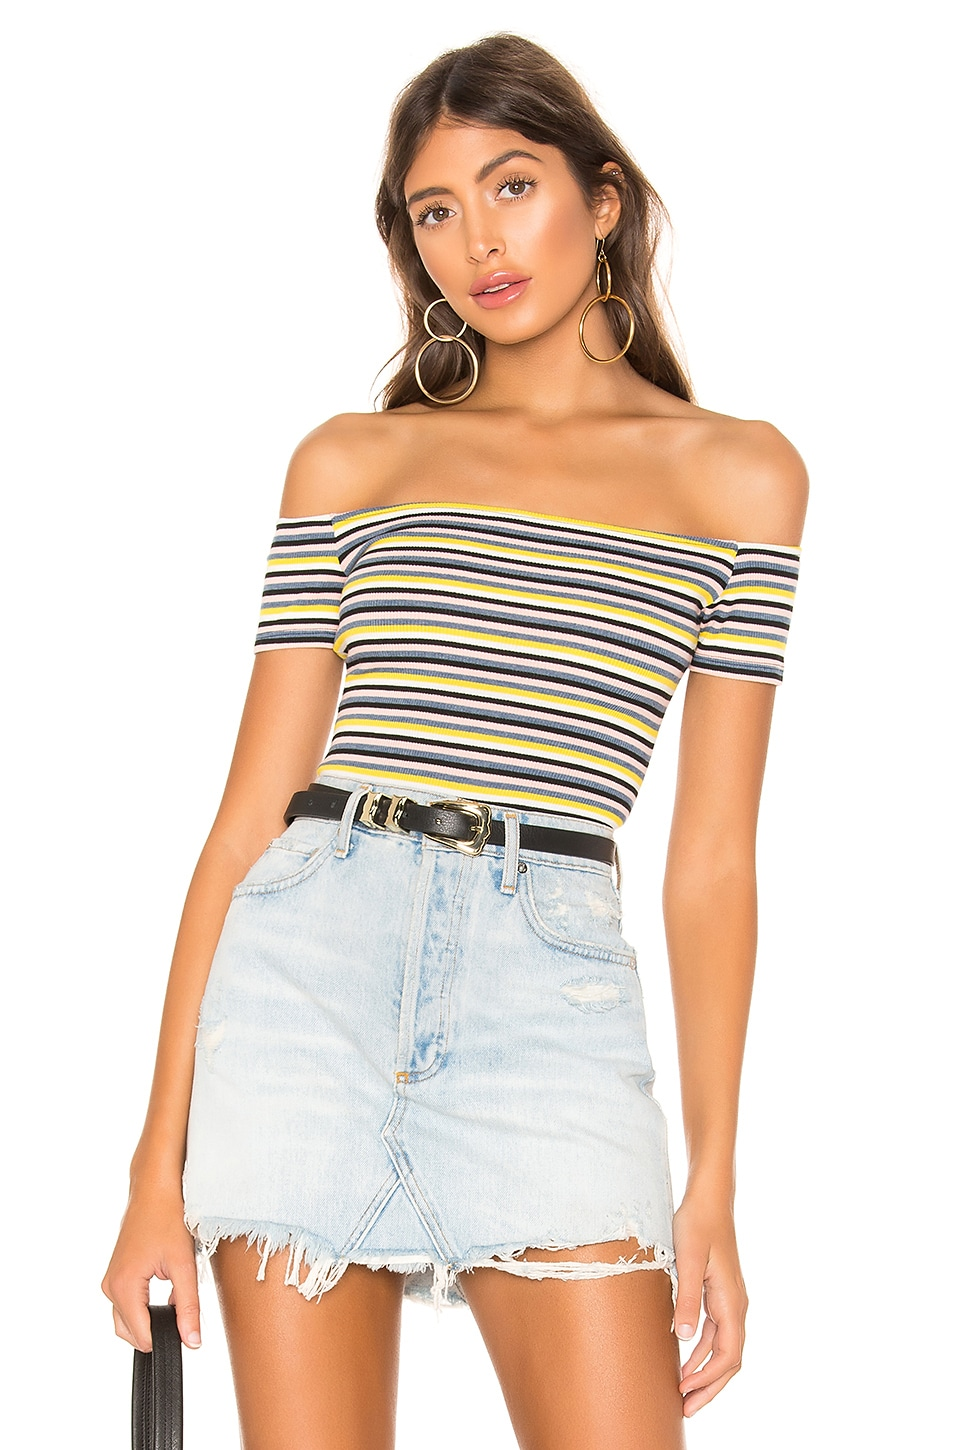 Privacy Please Lara Bodysuit in Yellow Stripe